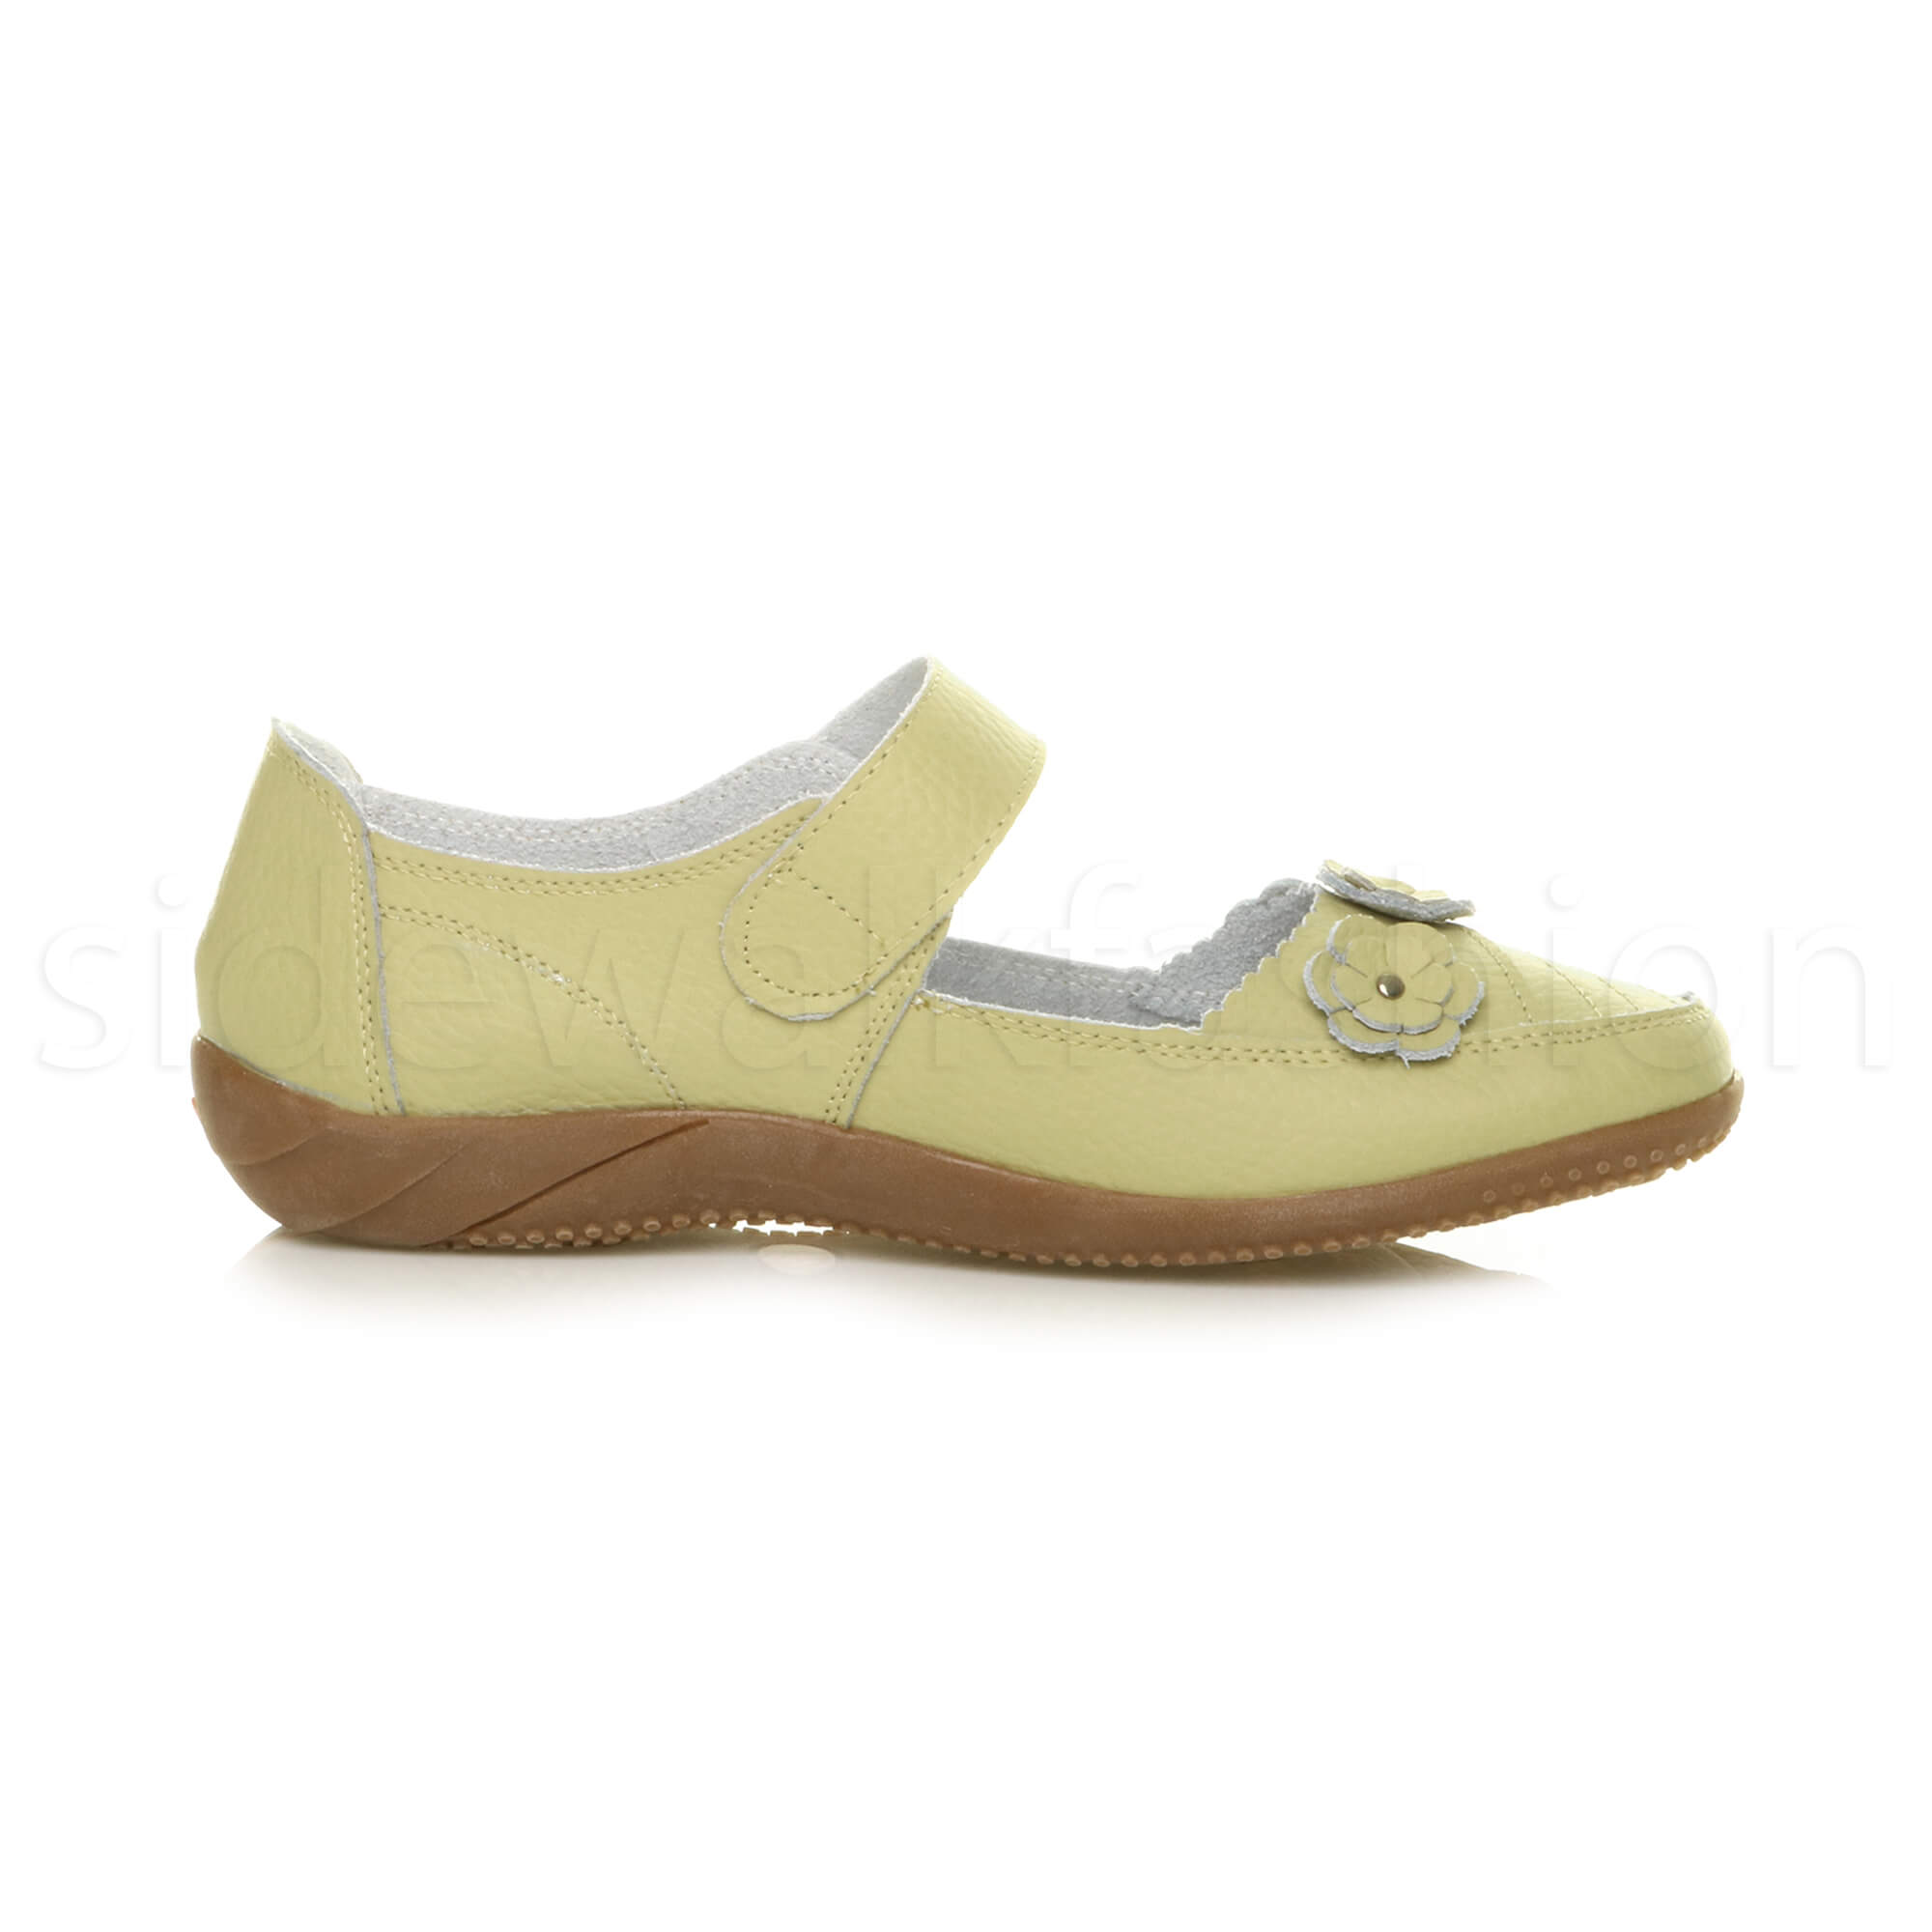 Womens-ladies-leather-comfort-walking-casual-sandals-mary-jane-strap-shoes-size thumbnail 44